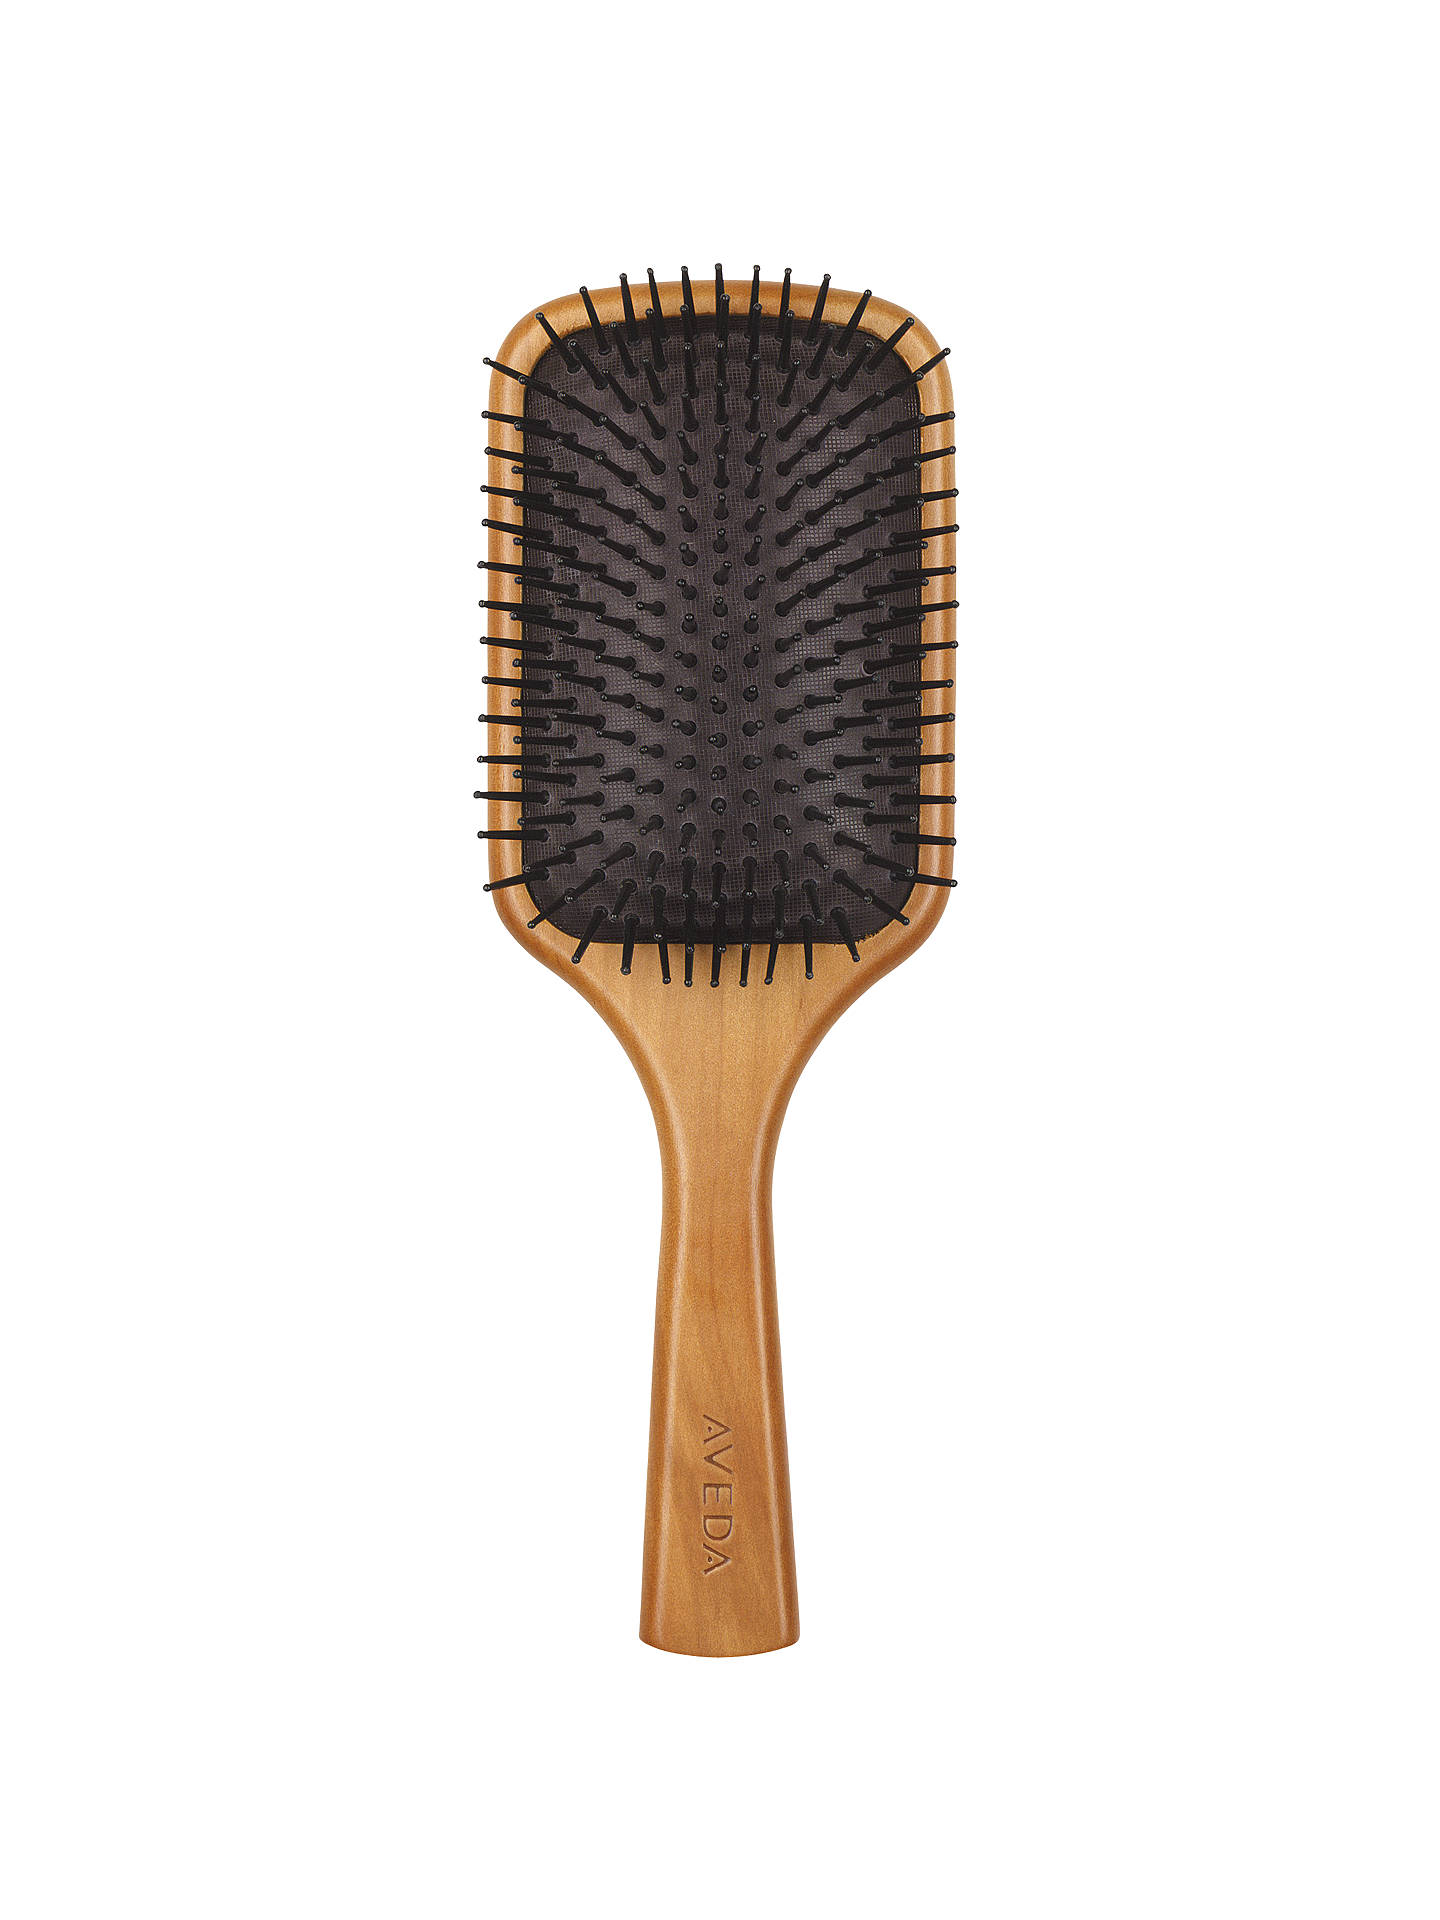 BuyAVEDA Wooden Hair Paddle Brush Online at johnlewis.com